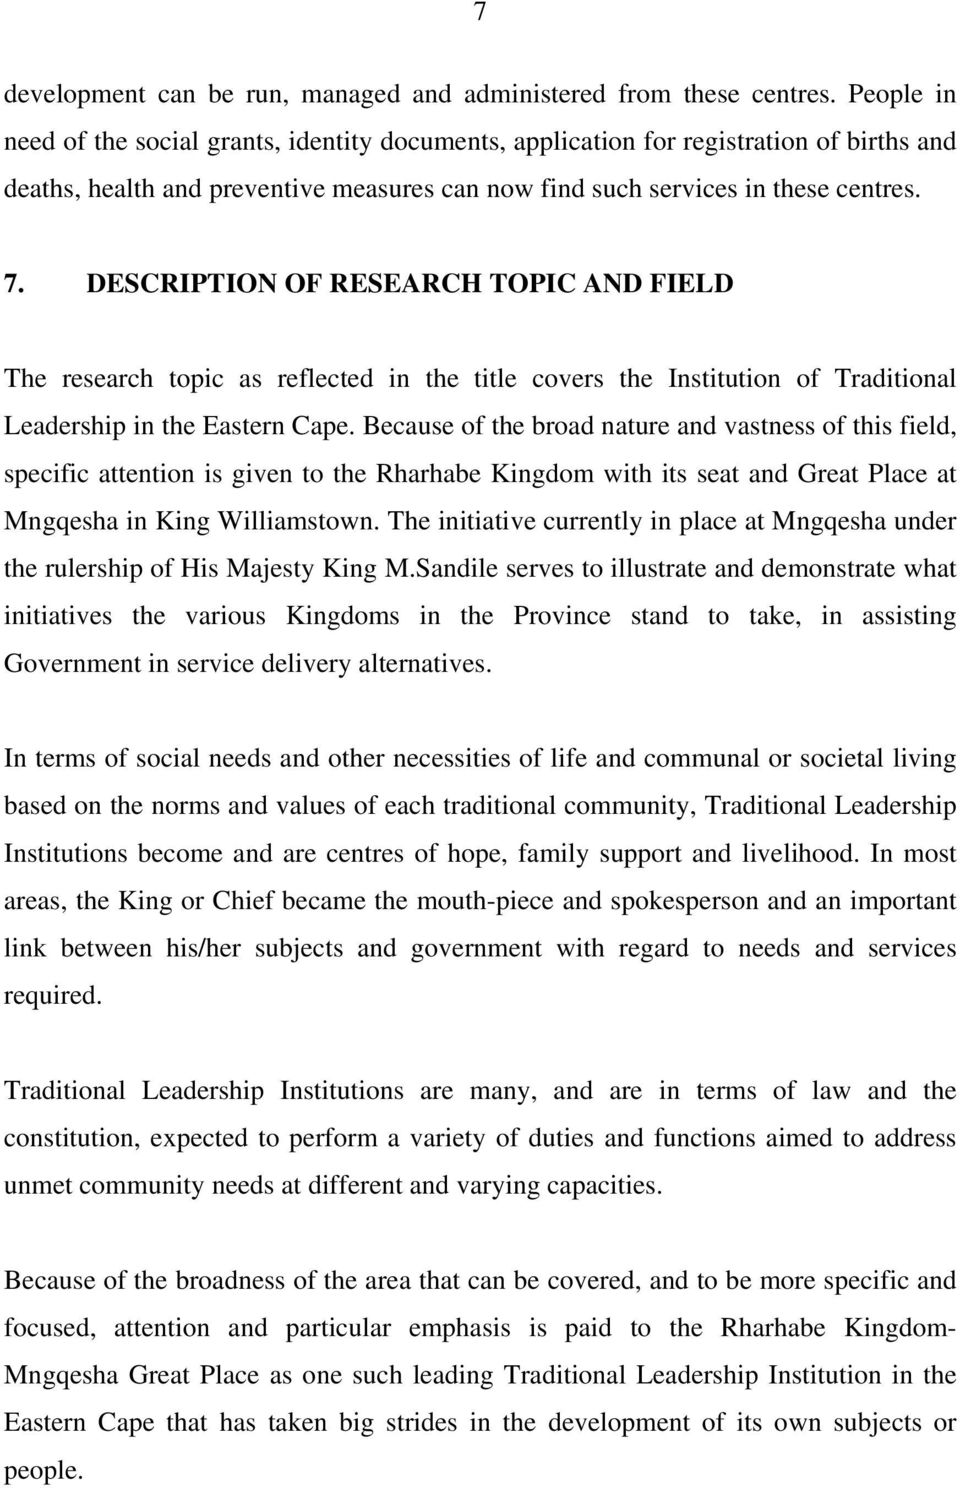 DESCRIPTION OF RESEARCH TOPIC AND FIELD The research topic as reflected in the title covers the Institution of Traditional Leadership in the Eastern Cape.